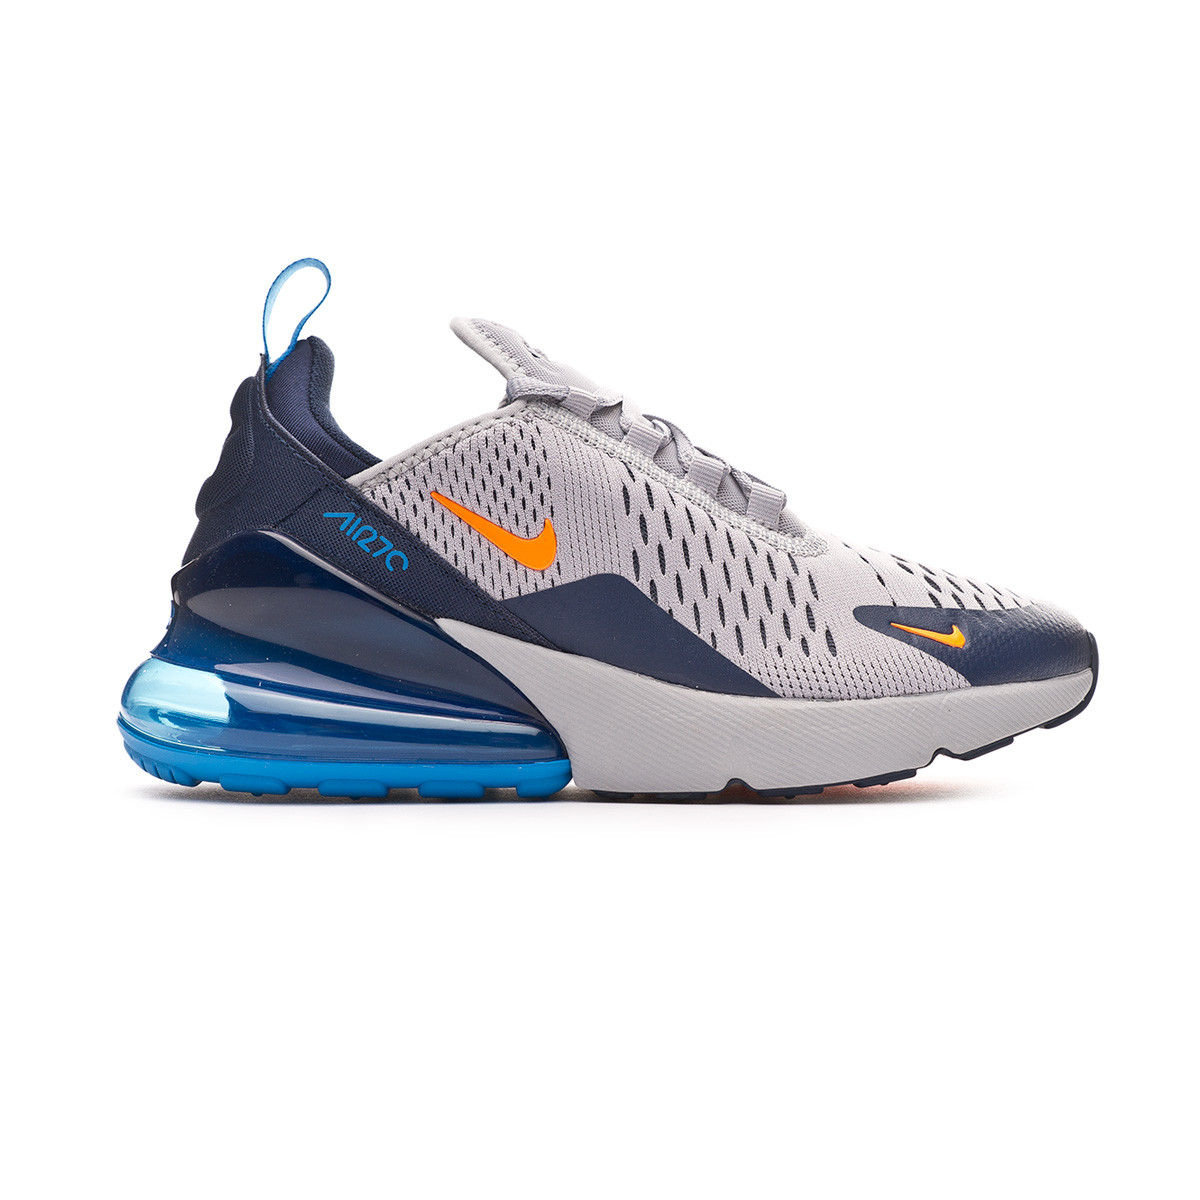 super popular e35fa 4979e Trainers Nike Air Max 270 Niño Wolf grey-Total orange-Midnight navy -  Football store Fútbol Emotion